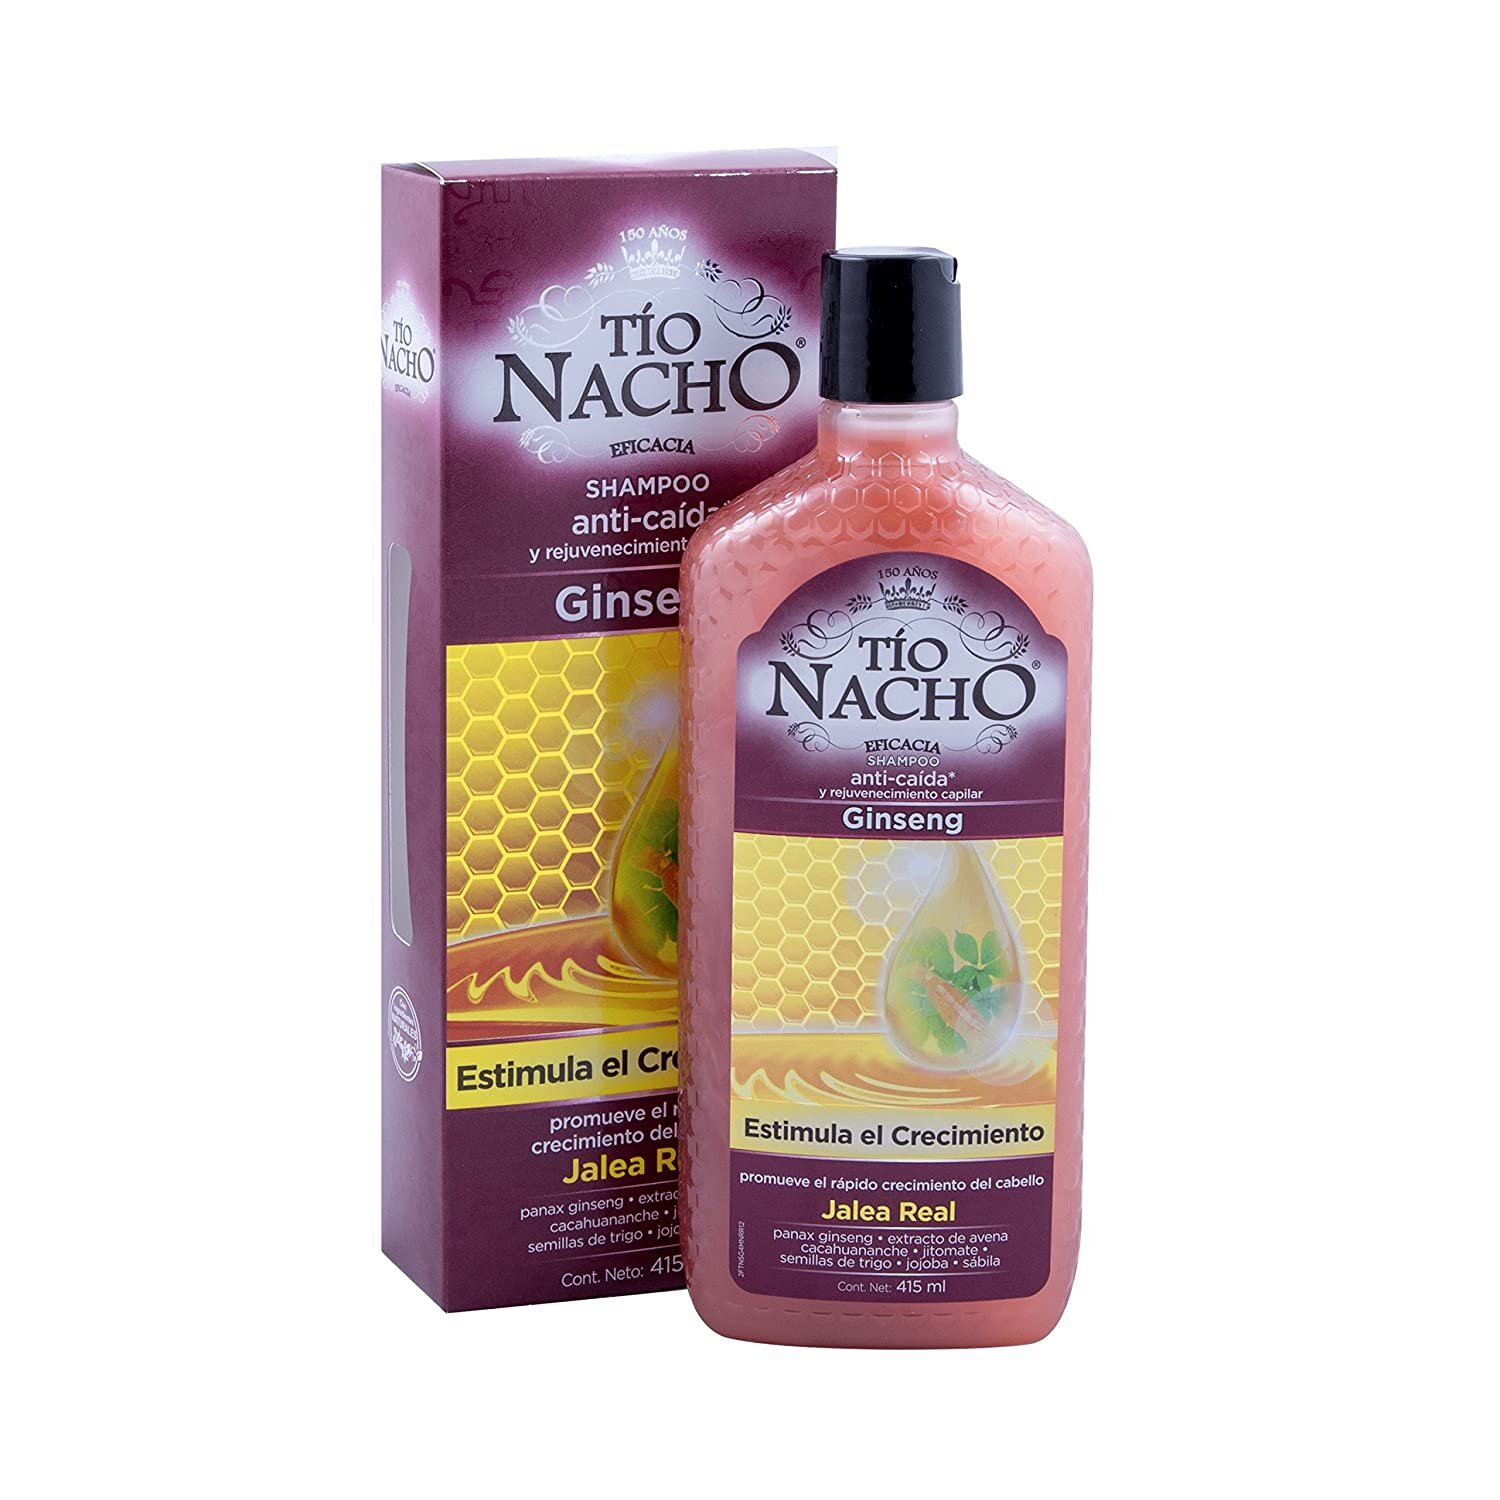 Tio Nacho Ginseng Rejuvenation and Anti-Hair Loss/Anti-caida y rejuvenecimento Dcache Gift Set